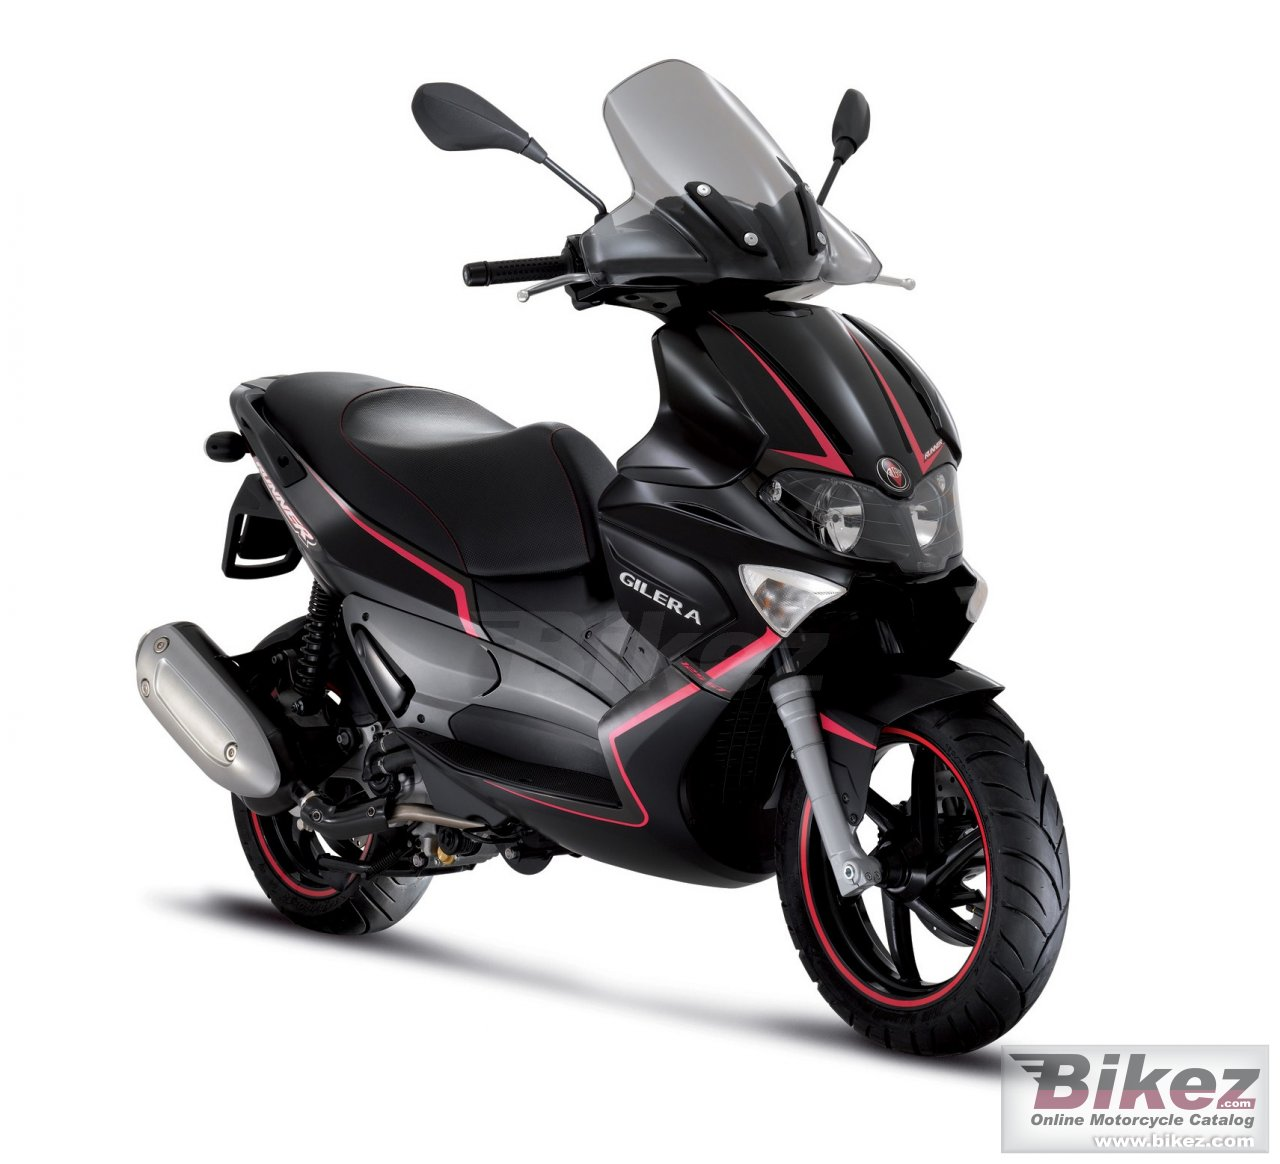 Big Gilera runner st 200 picture and wallpaper from Bikez.com